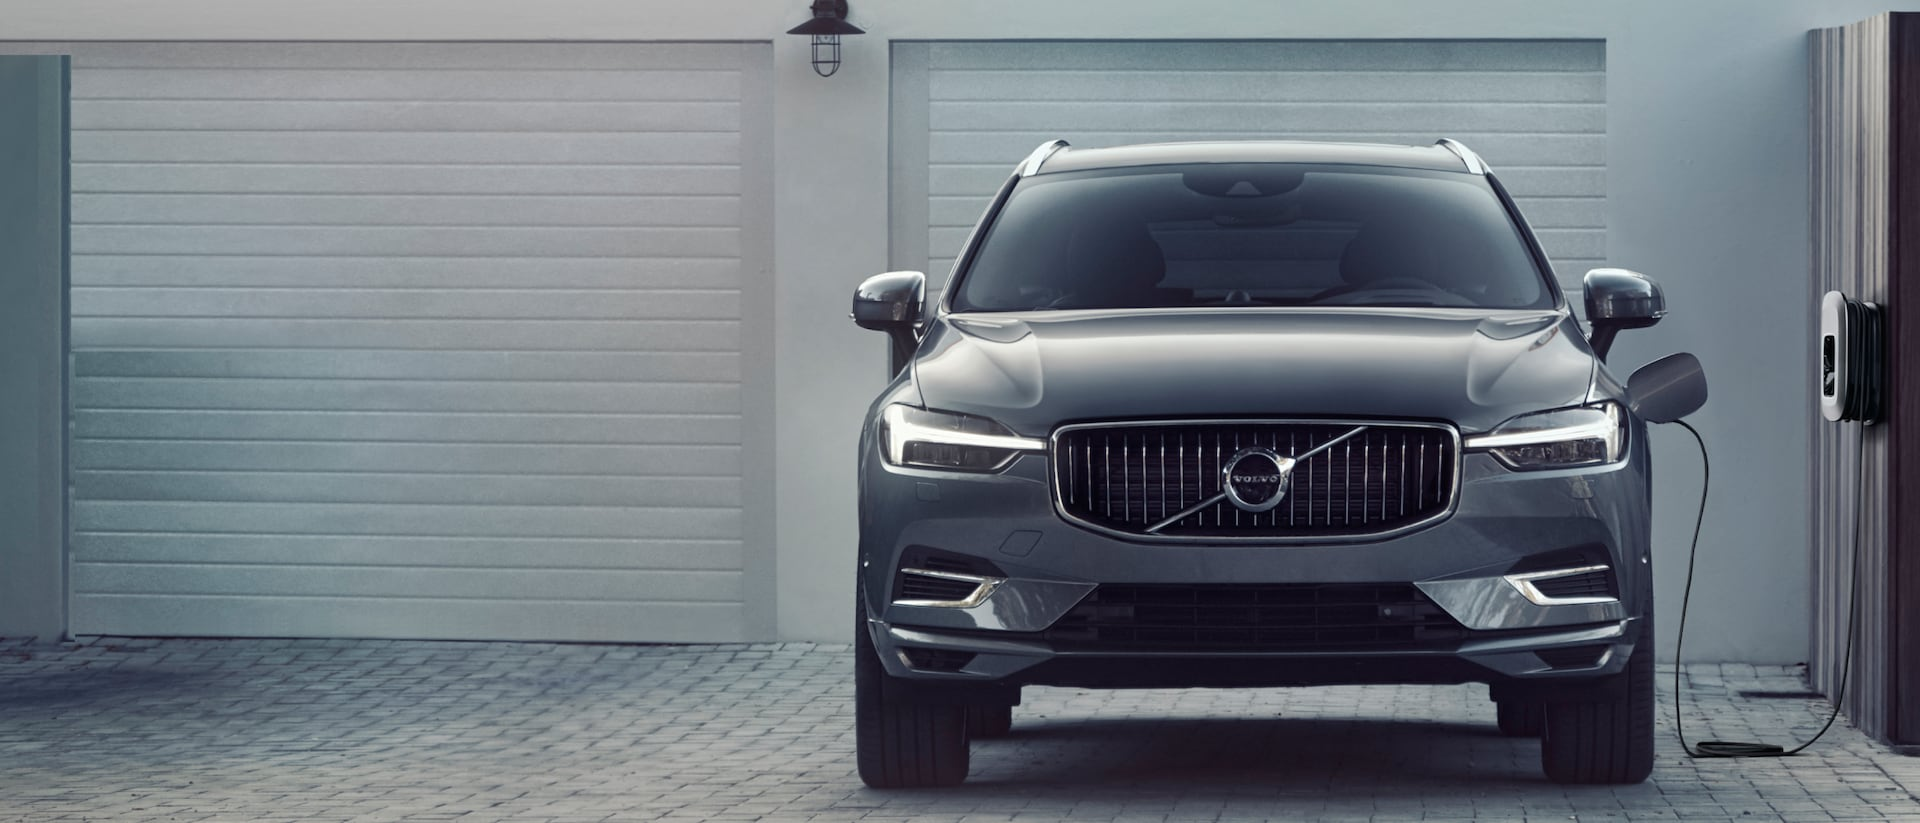 Front view of Volvo XC60 Recharge car